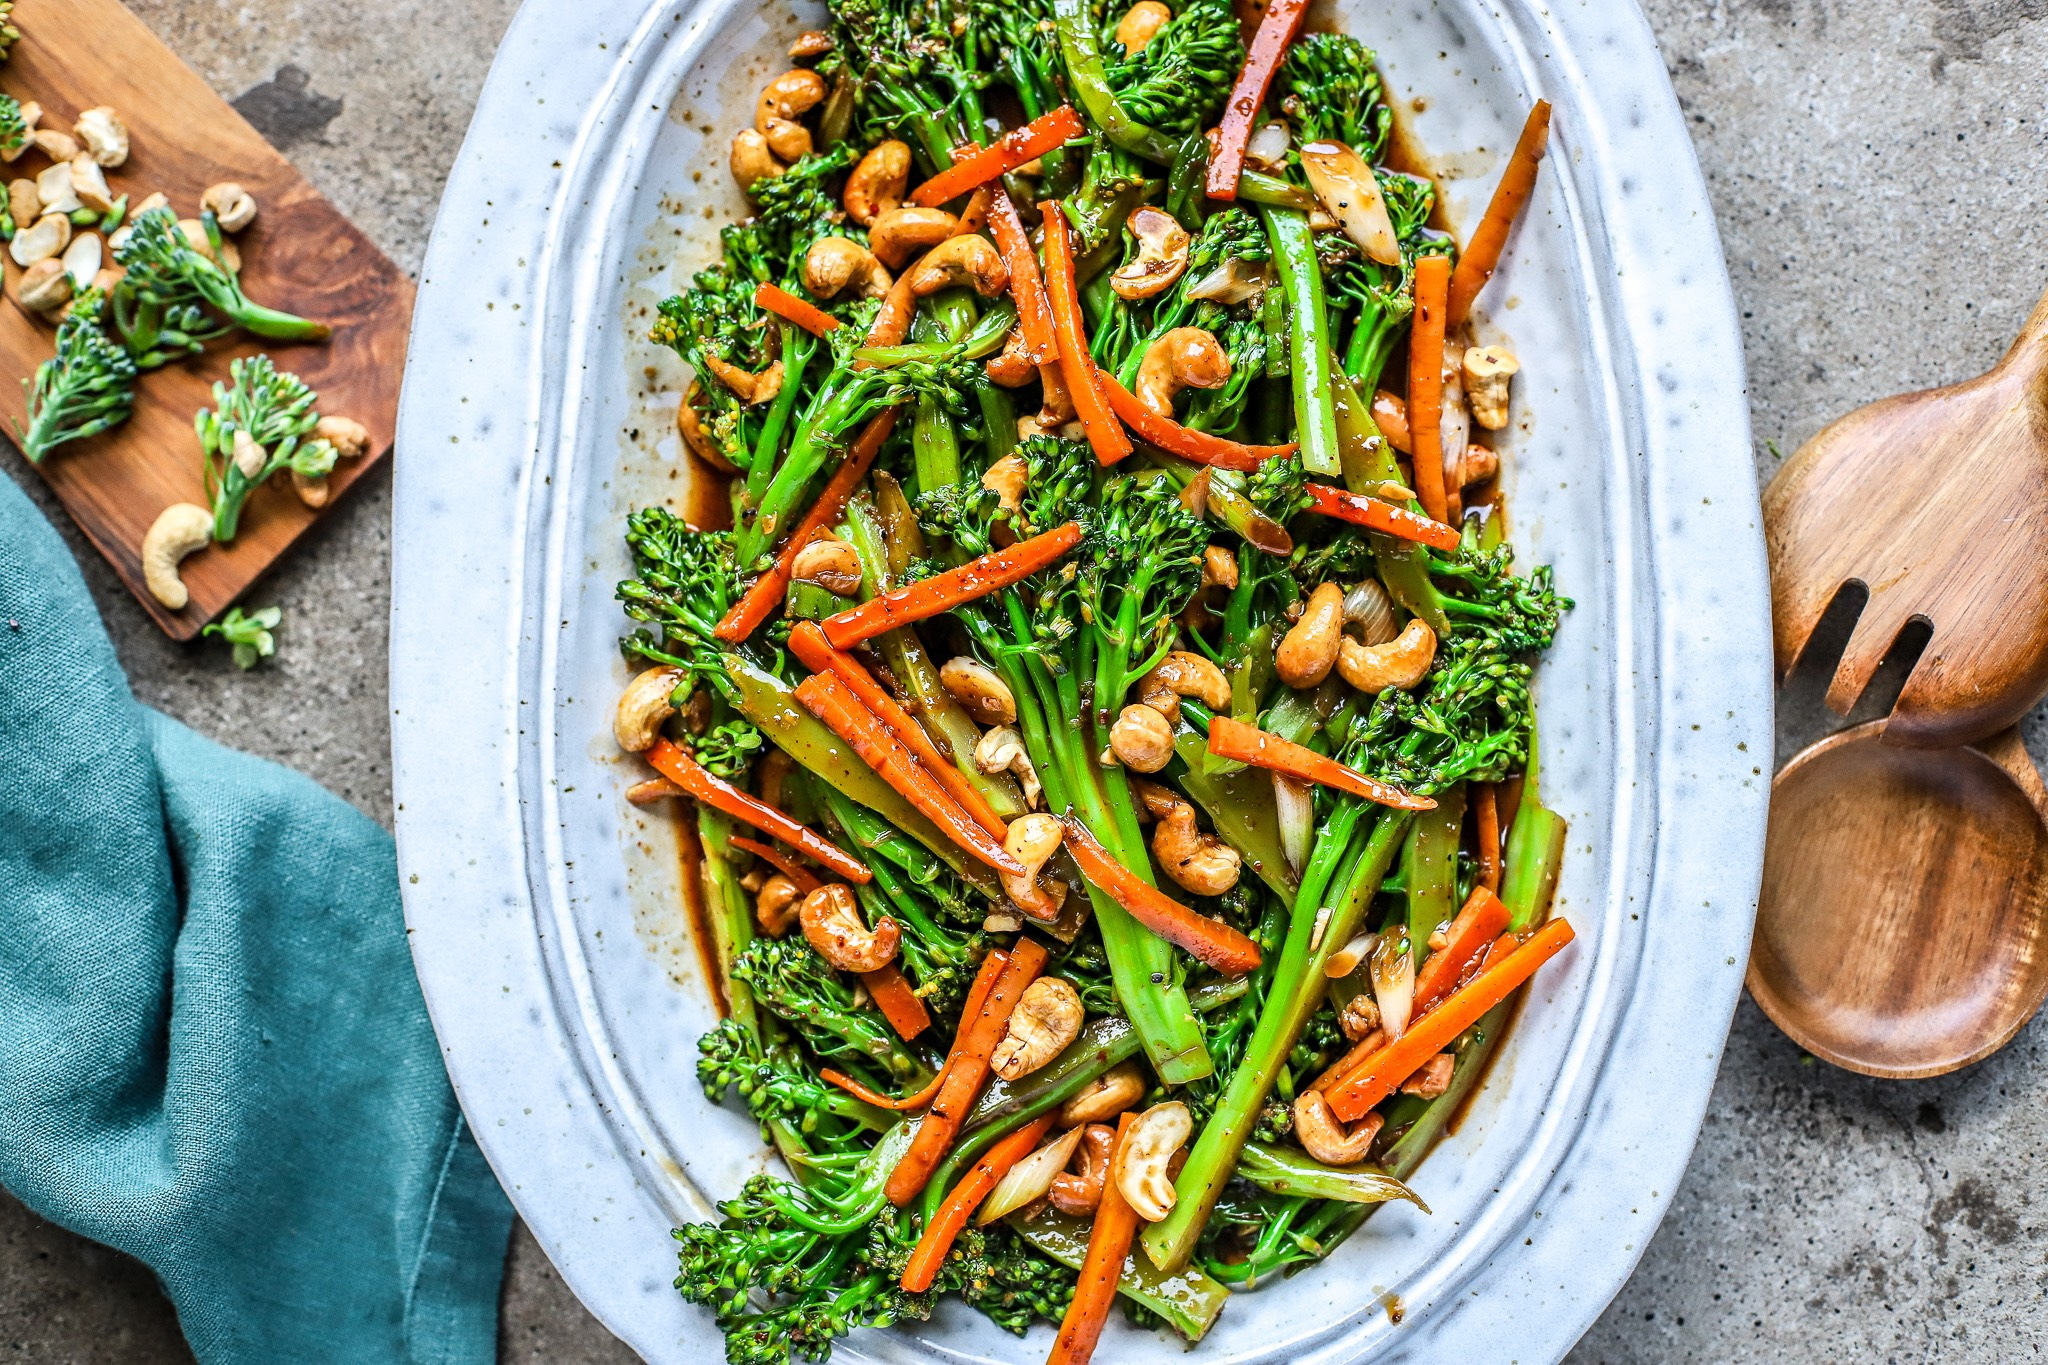 Feature image of Kung Pao style broccoli on handmade grey ceramic plate on concrete background